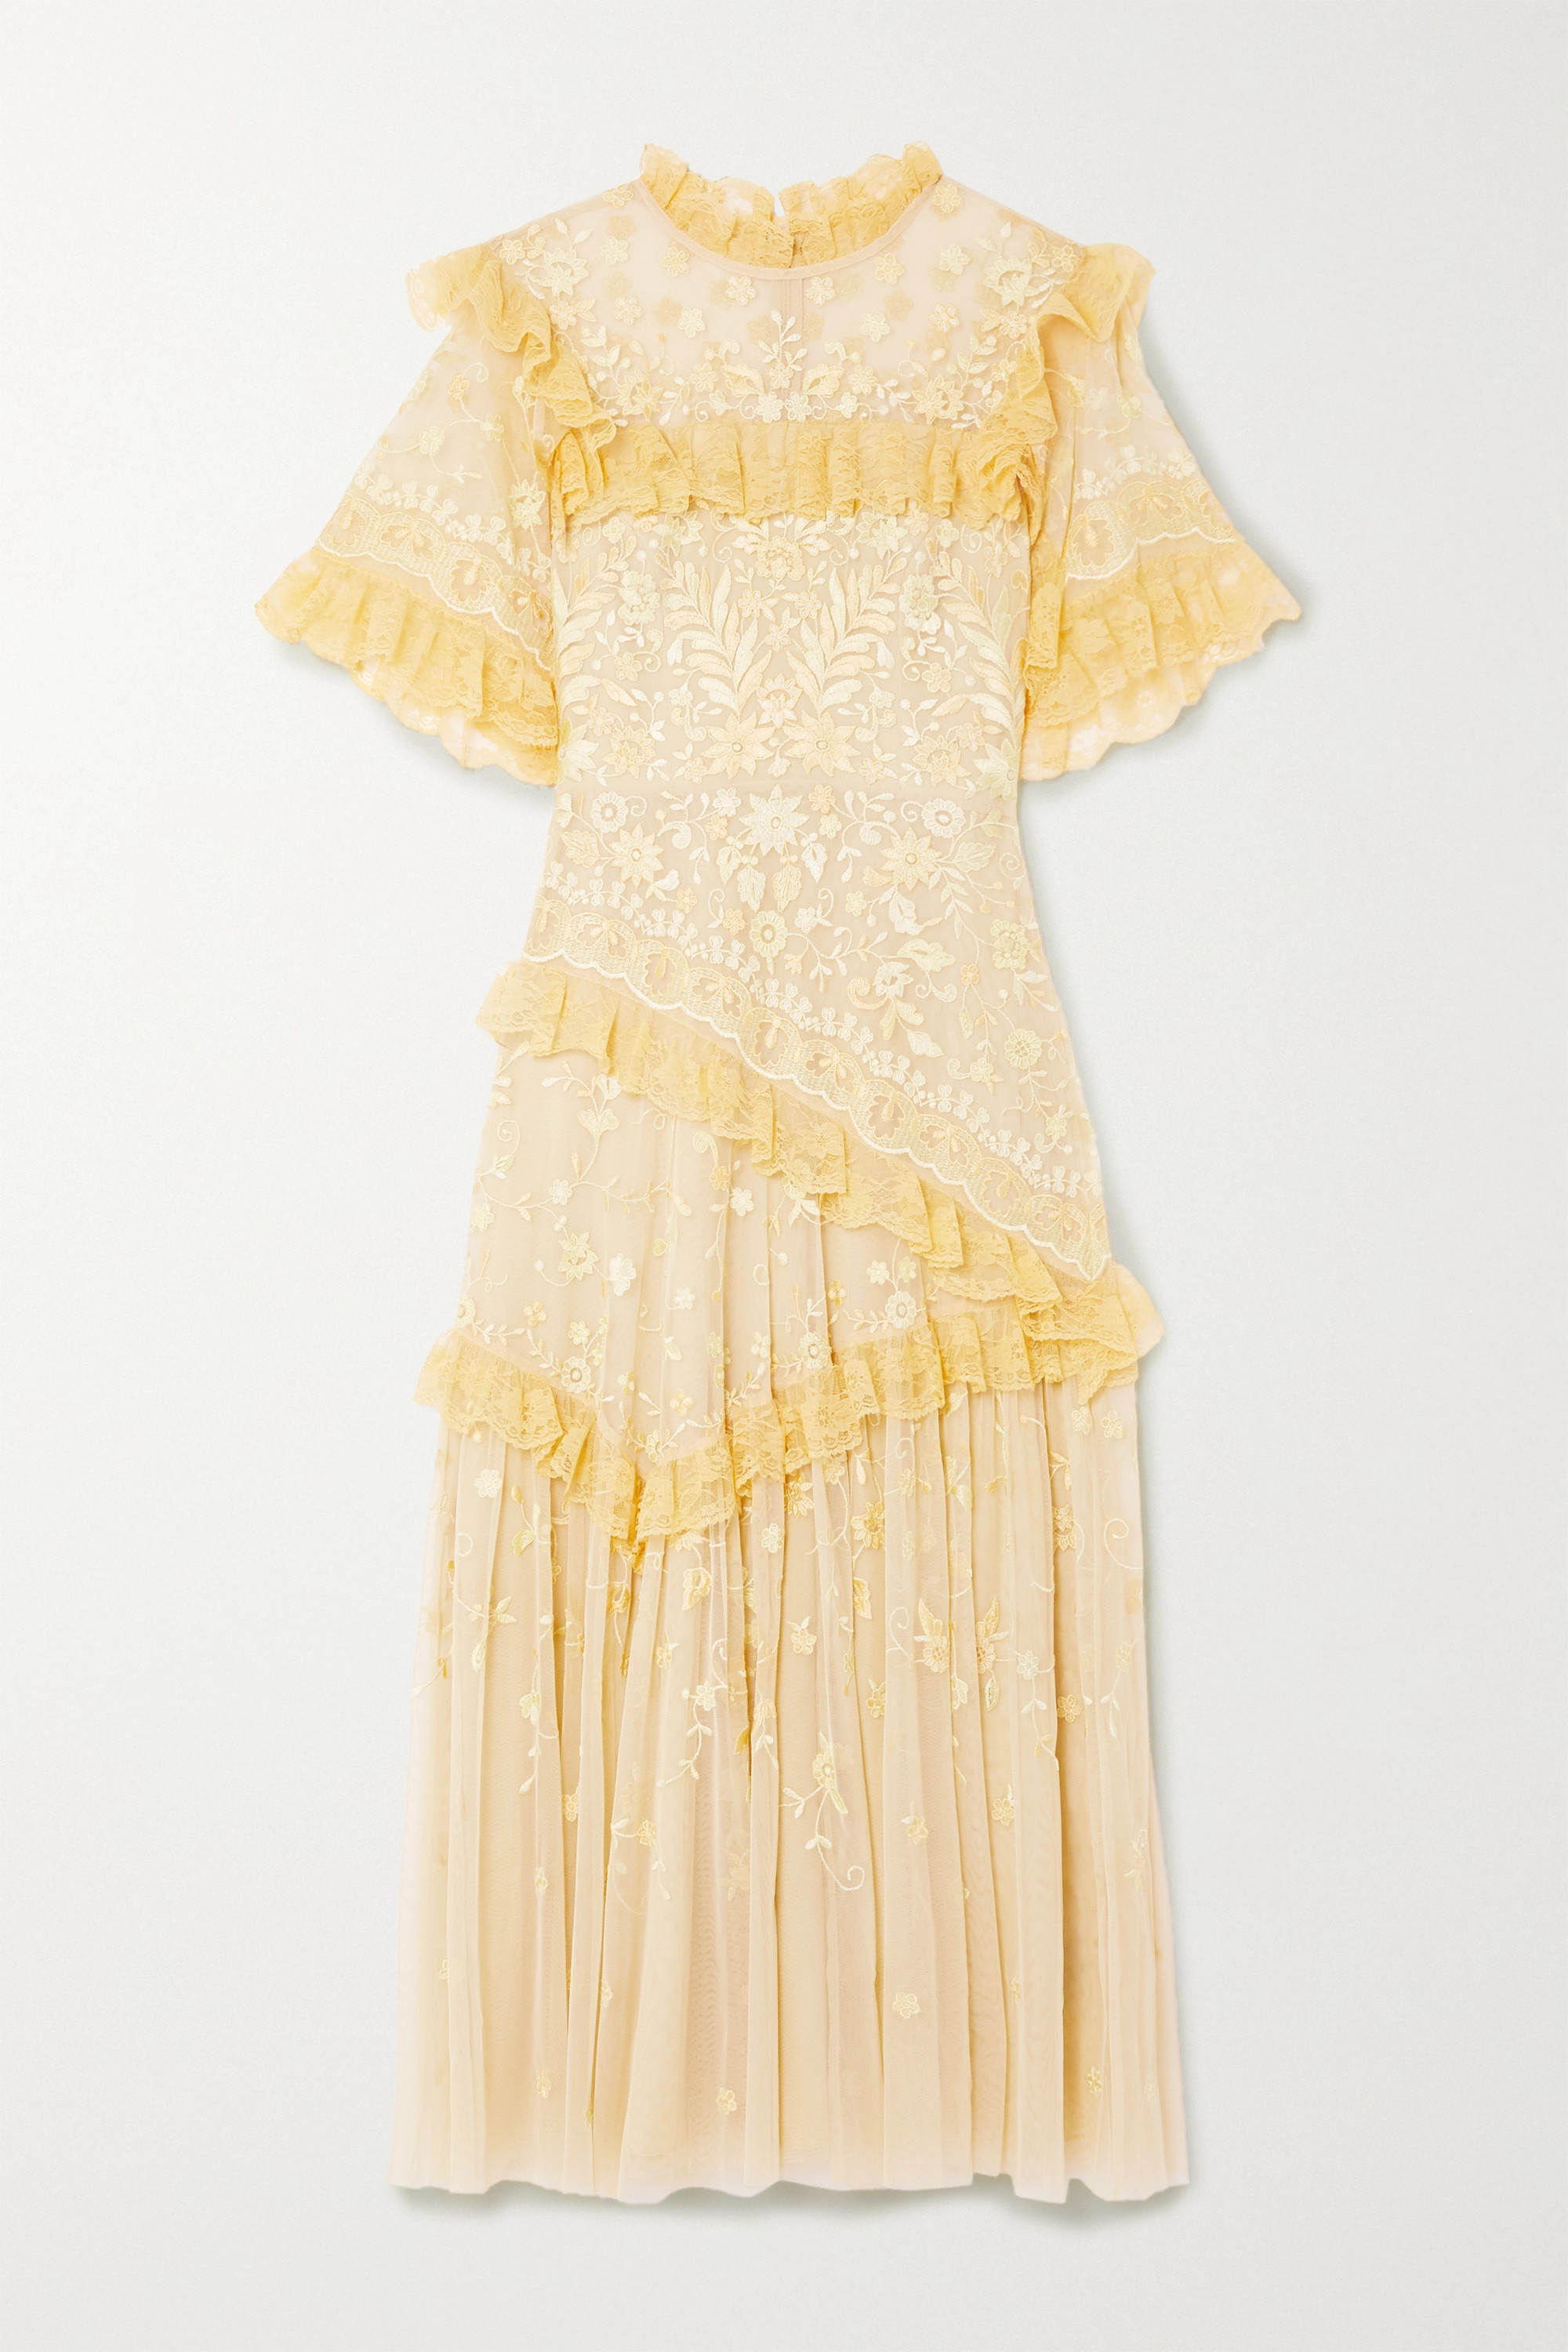 Needle & Thread + Jasmine Hemsley Earth Garden lace-trimmed embroidered tulle midi dress